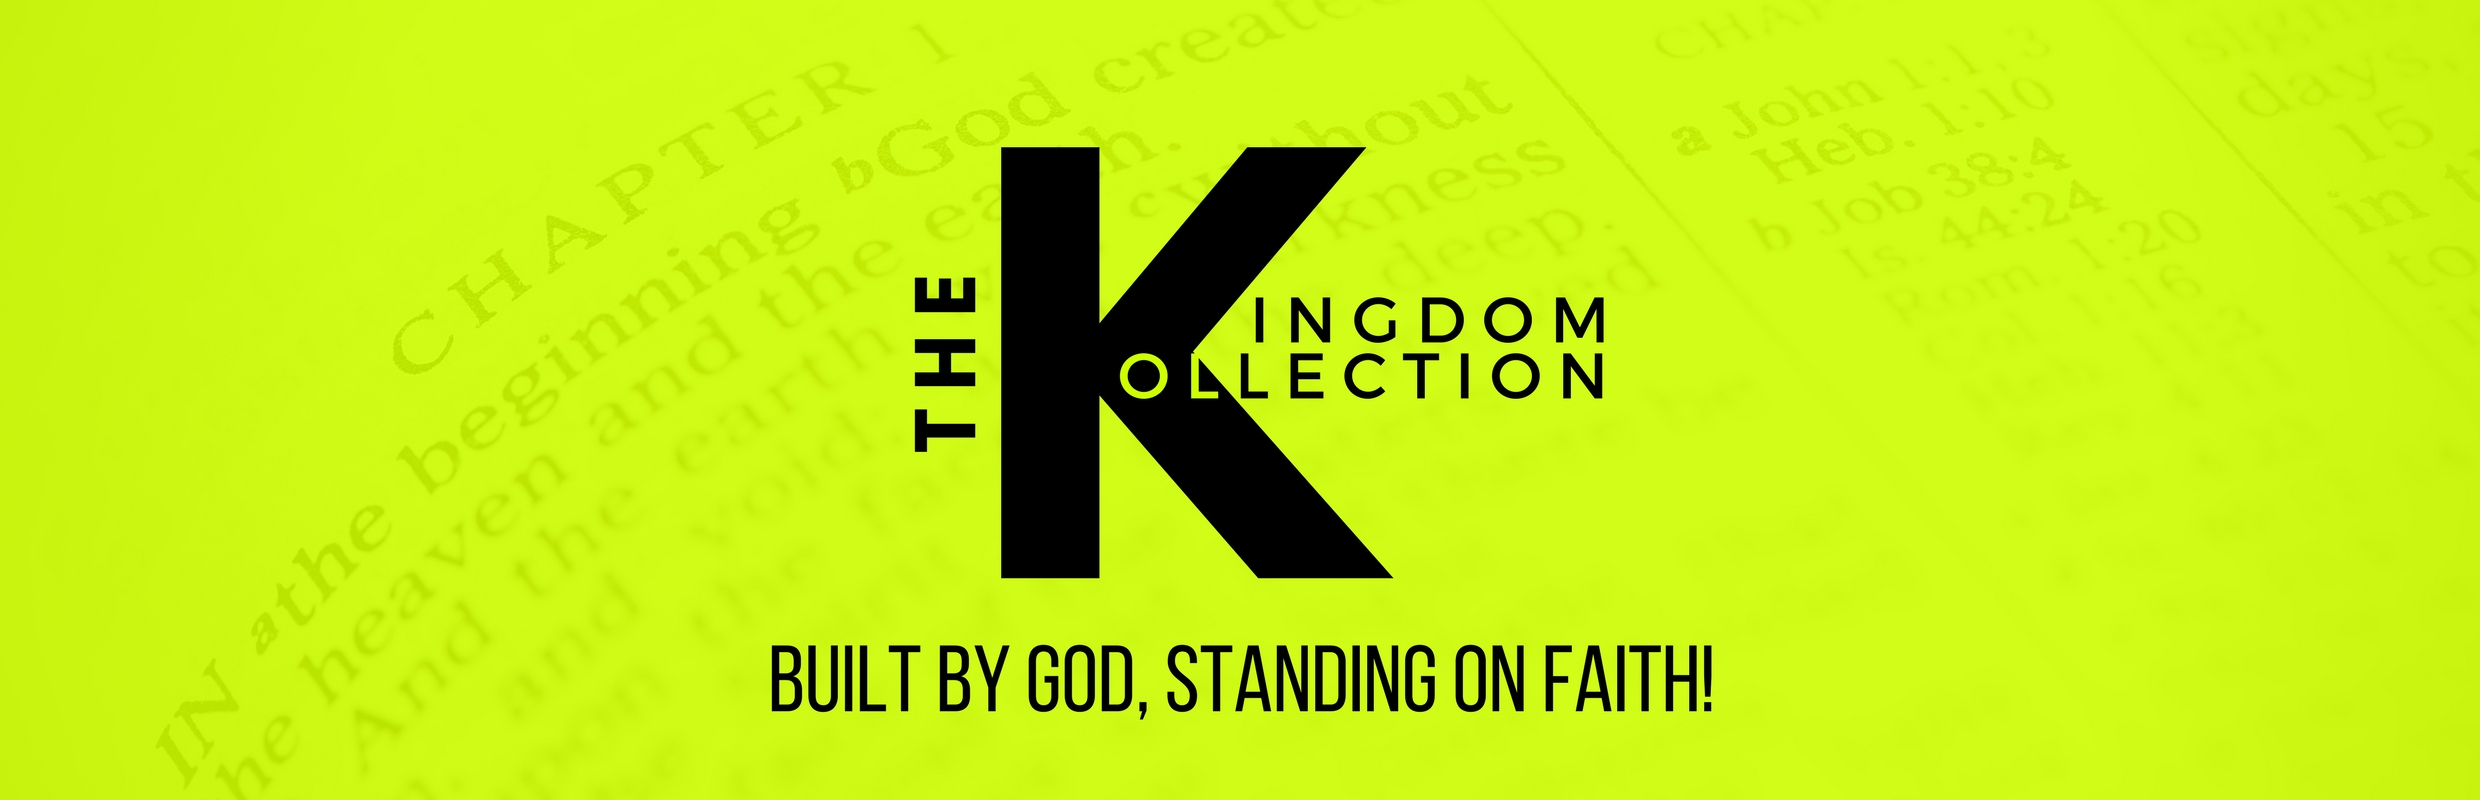 The Kingdom Kollection